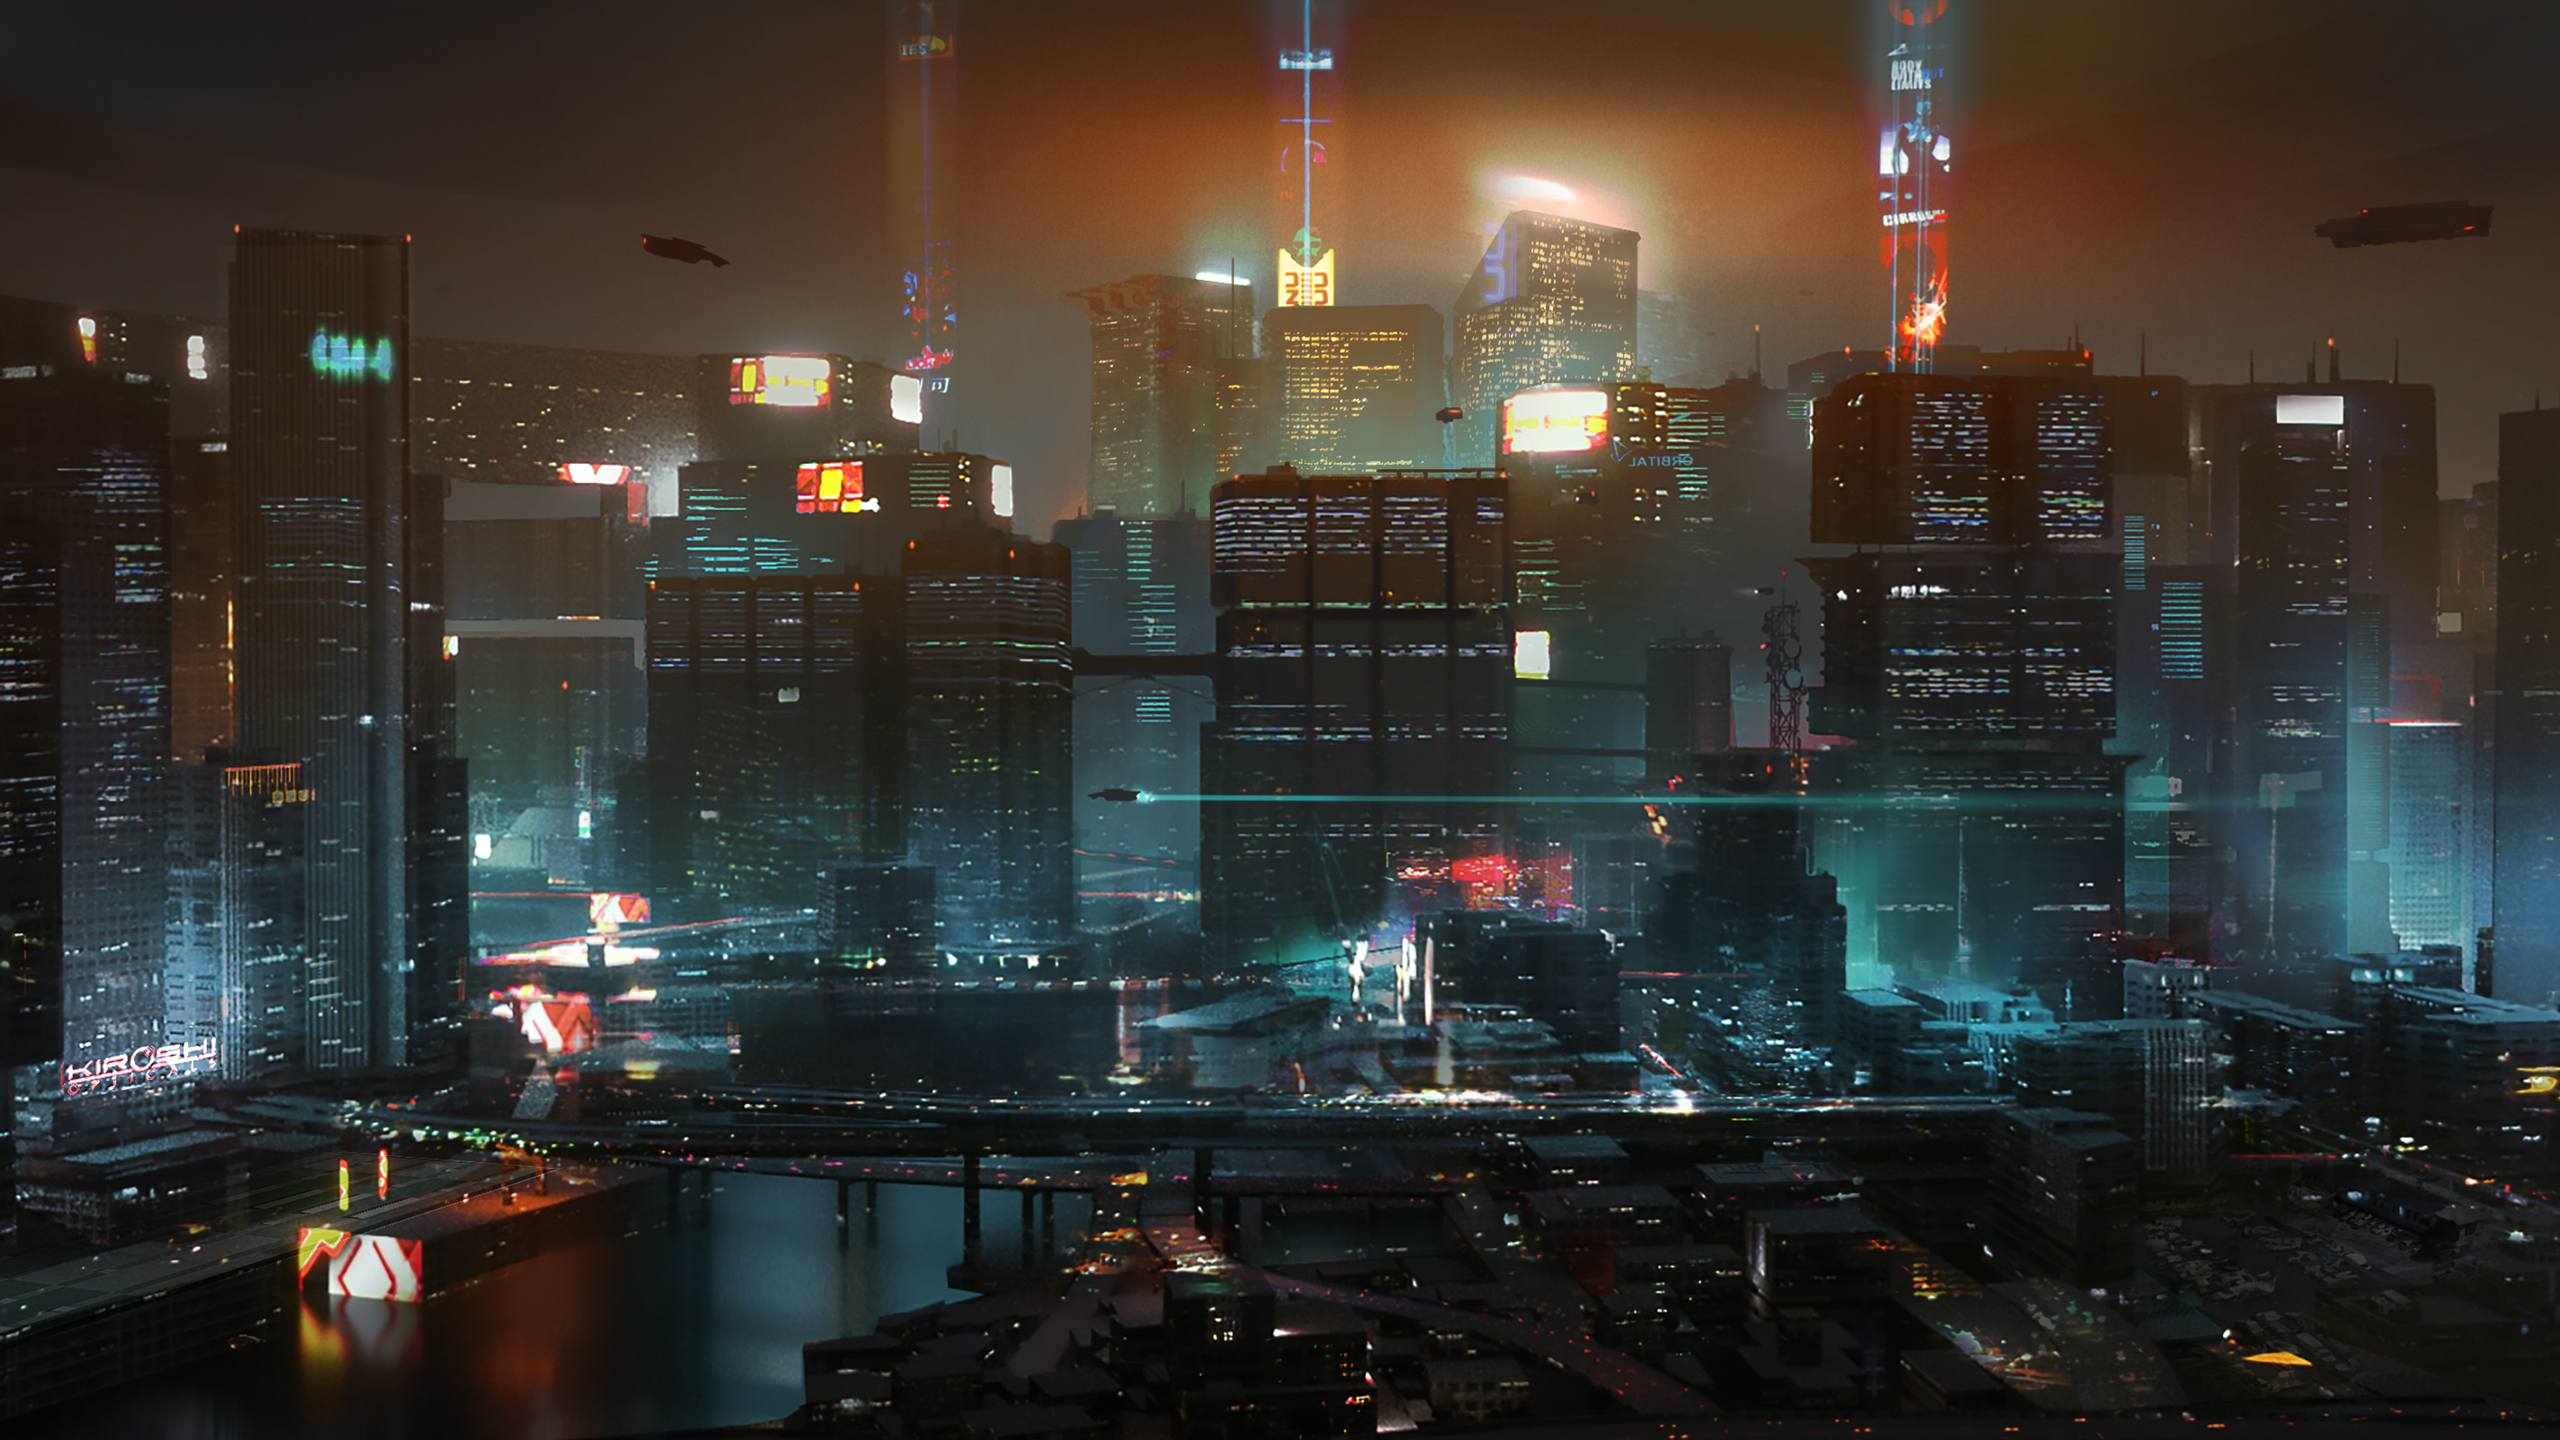 Here S Some Beautiful New Cyberpunk 2077 Concept Art Pc Gamer